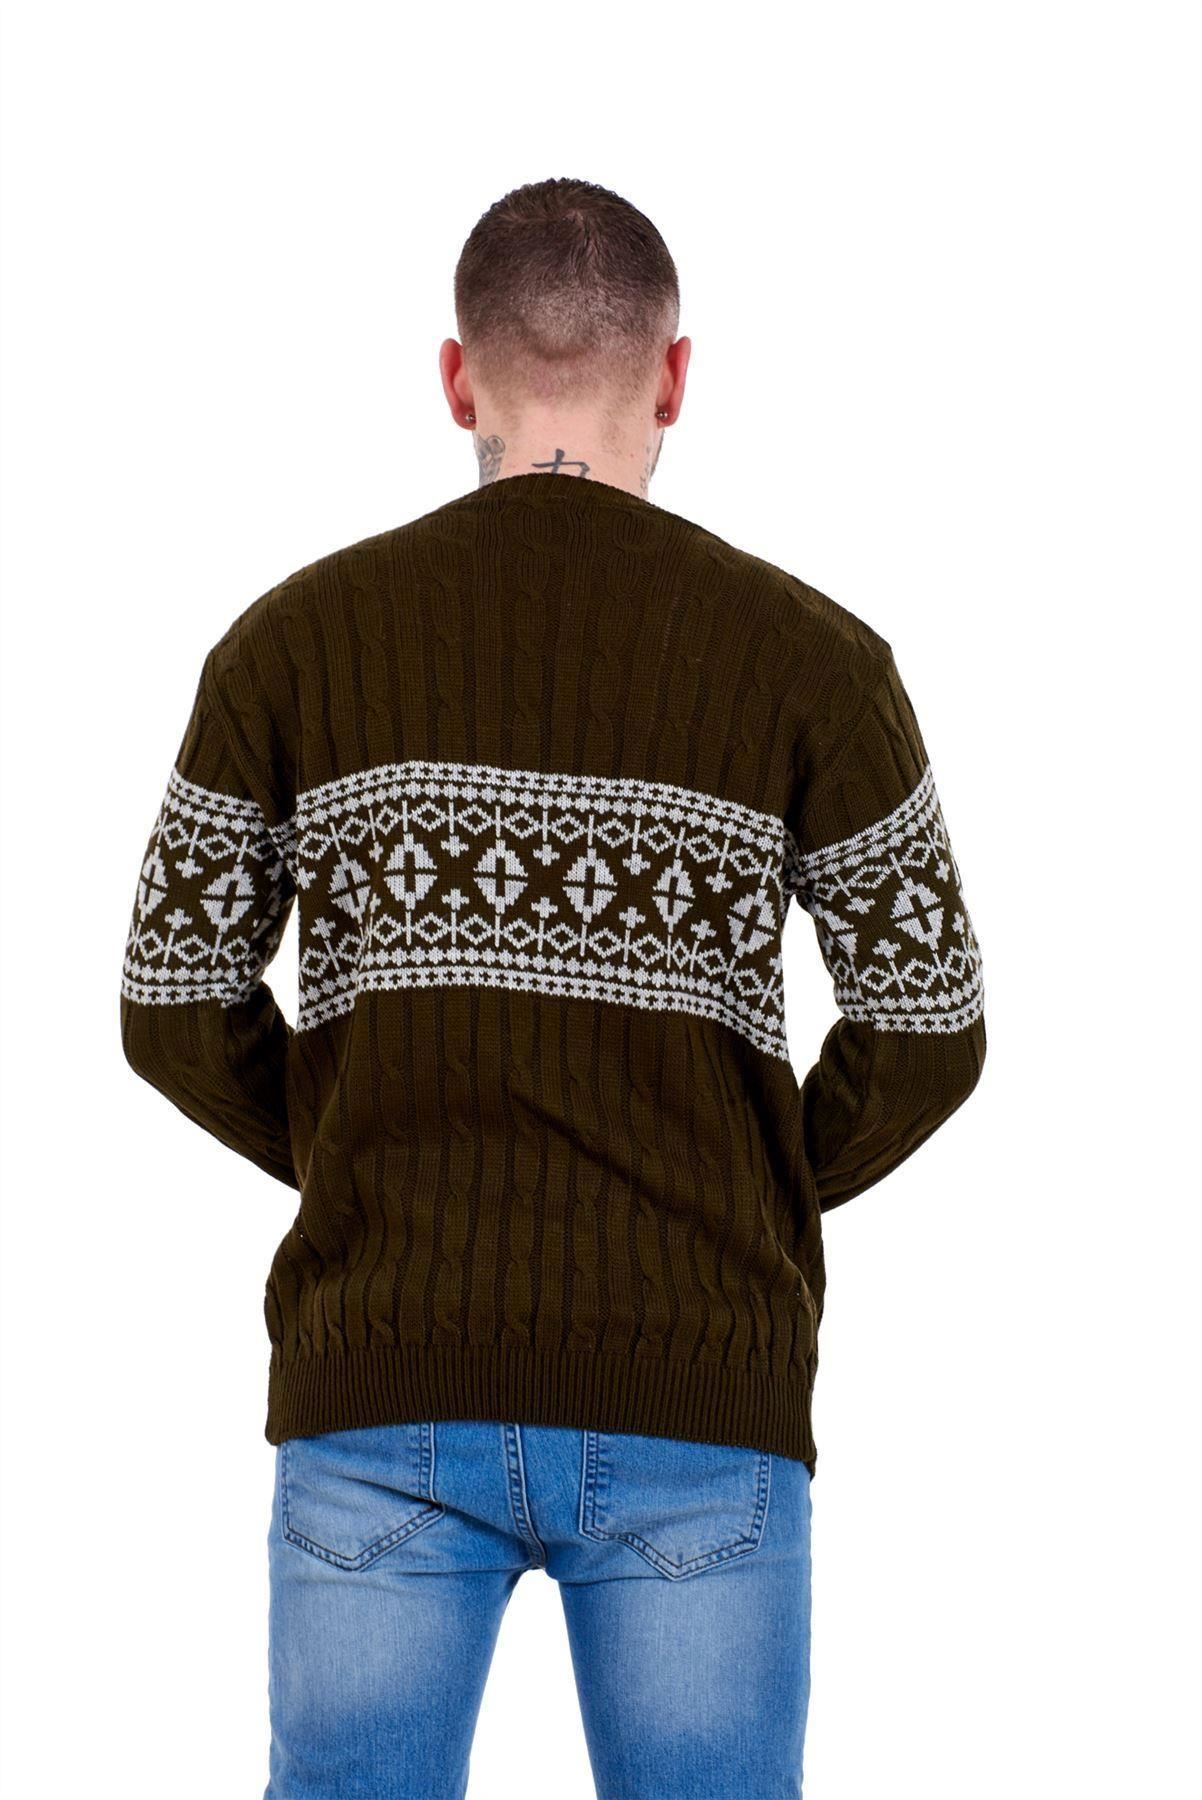 Mens-New-Cable-Knit-Jacquard-Long-Sleeve-Pullover-Jumper-Sweater-S-to-XL thumbnail 15